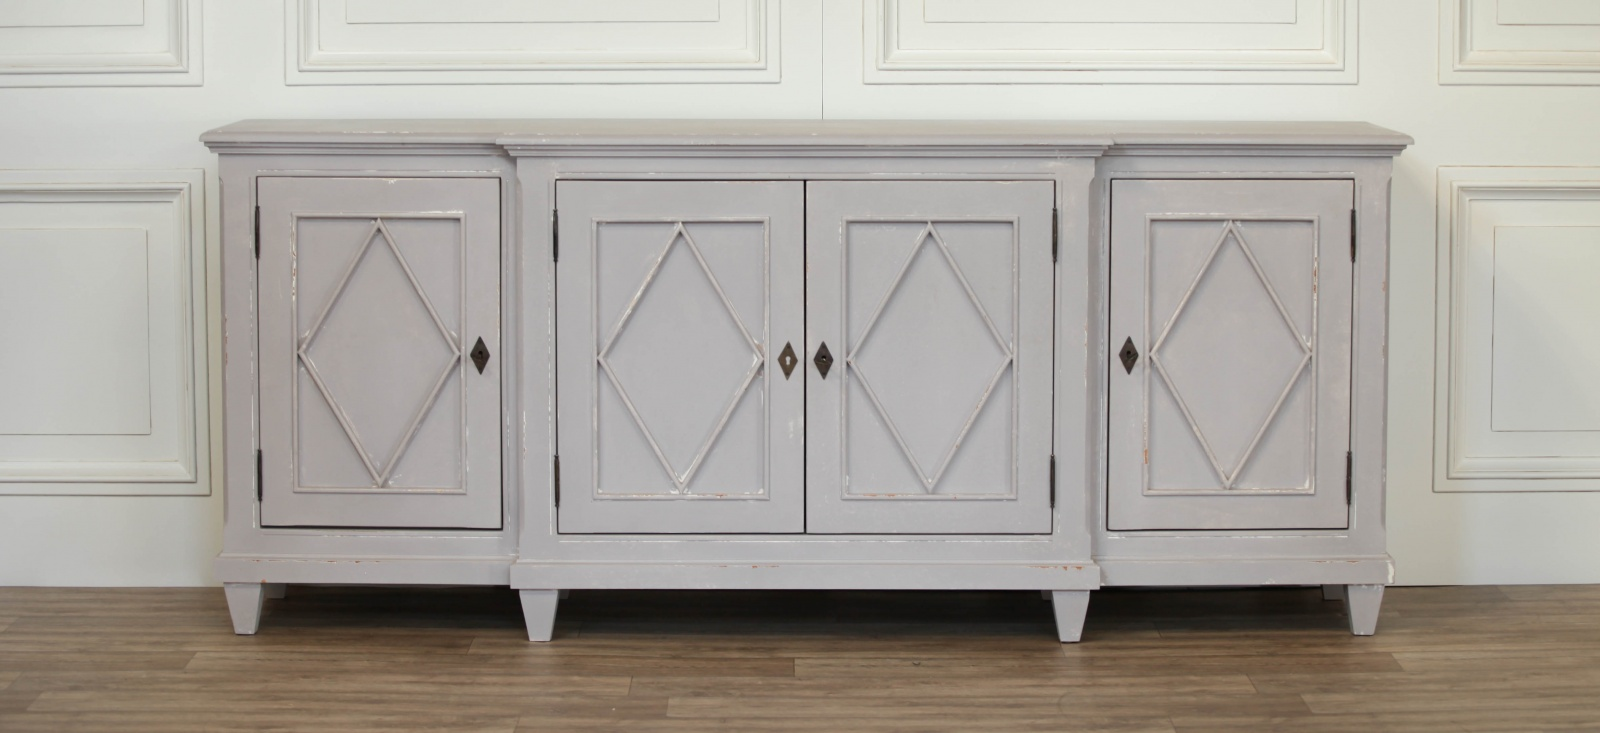 Lovely breakfront sideboard by strong bow painted in farrow and ball skimming stone. Luxury Interiors French Furniture Uk French Bedroom Contemporary Furniture Online